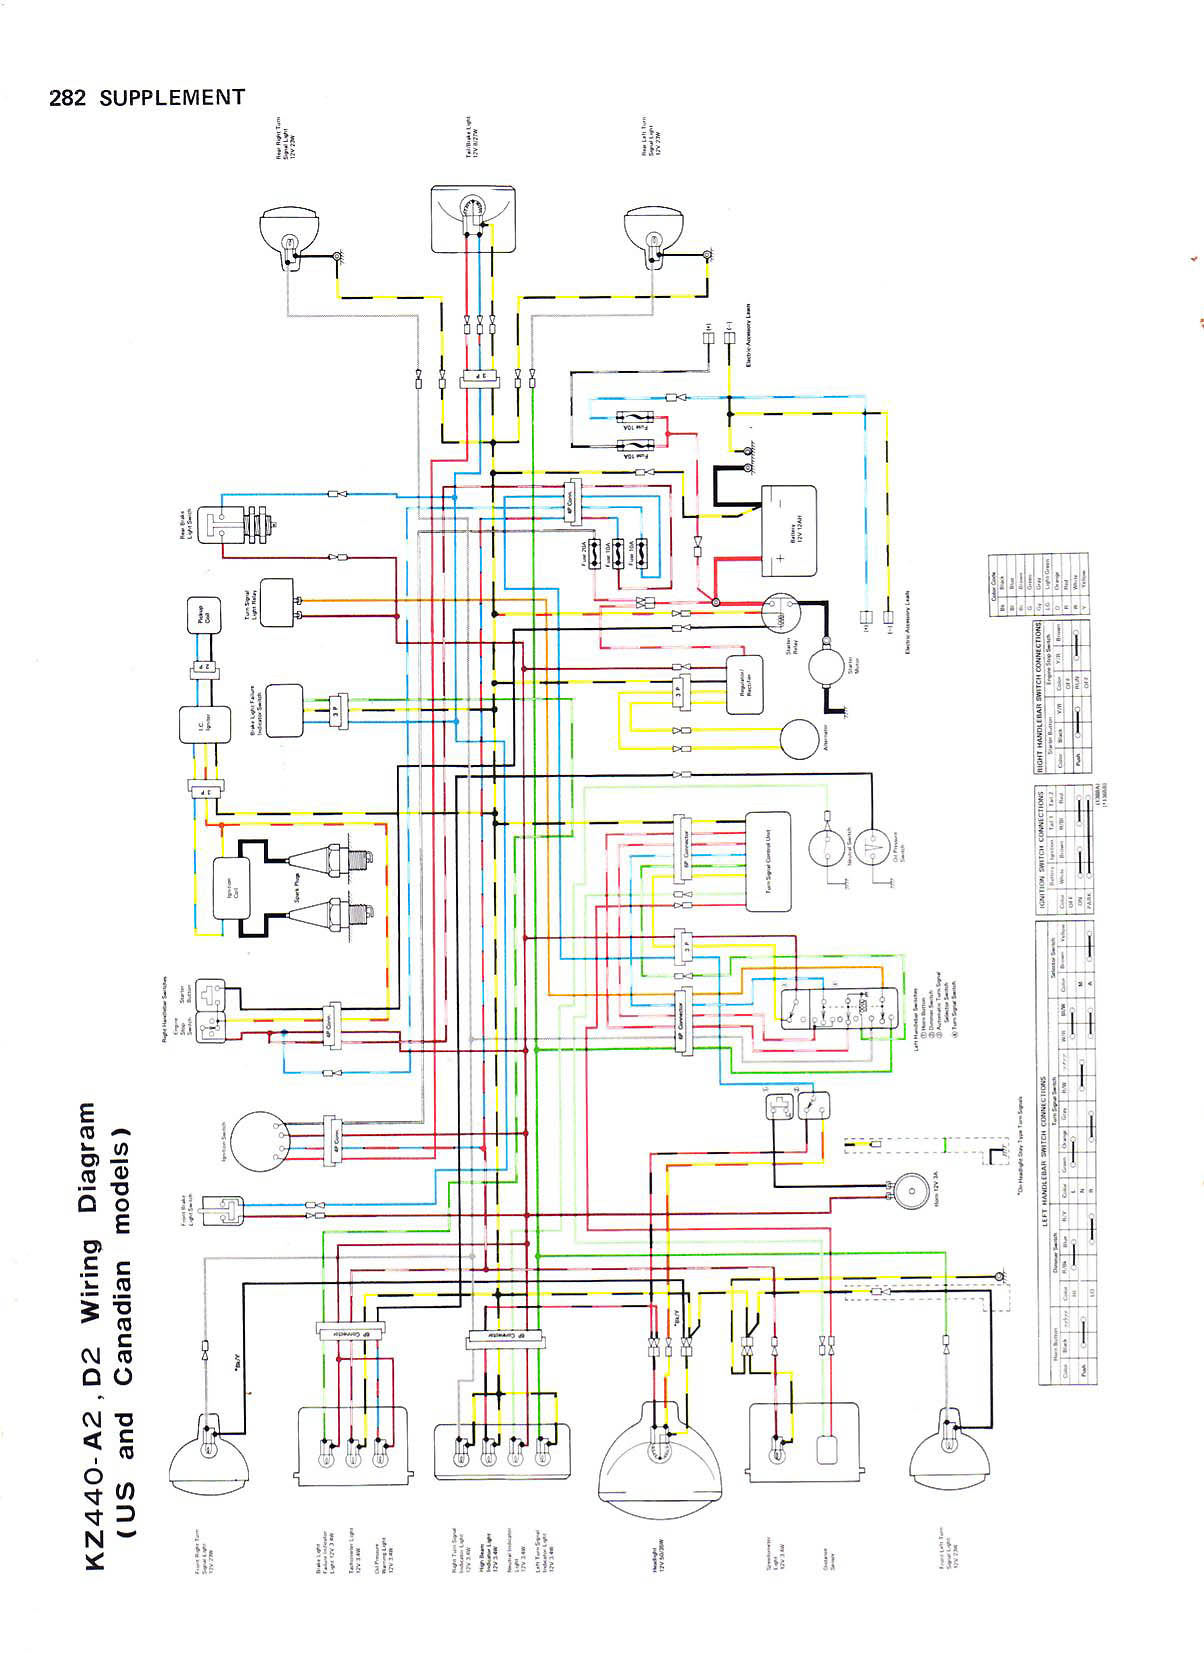 Kawasaki KZ 440 %2780 a %2782 Service Manual_Page_279 kz400 wiring diagram 1983 kawasaki motorcycle wiring diagrams  at bakdesigns.co